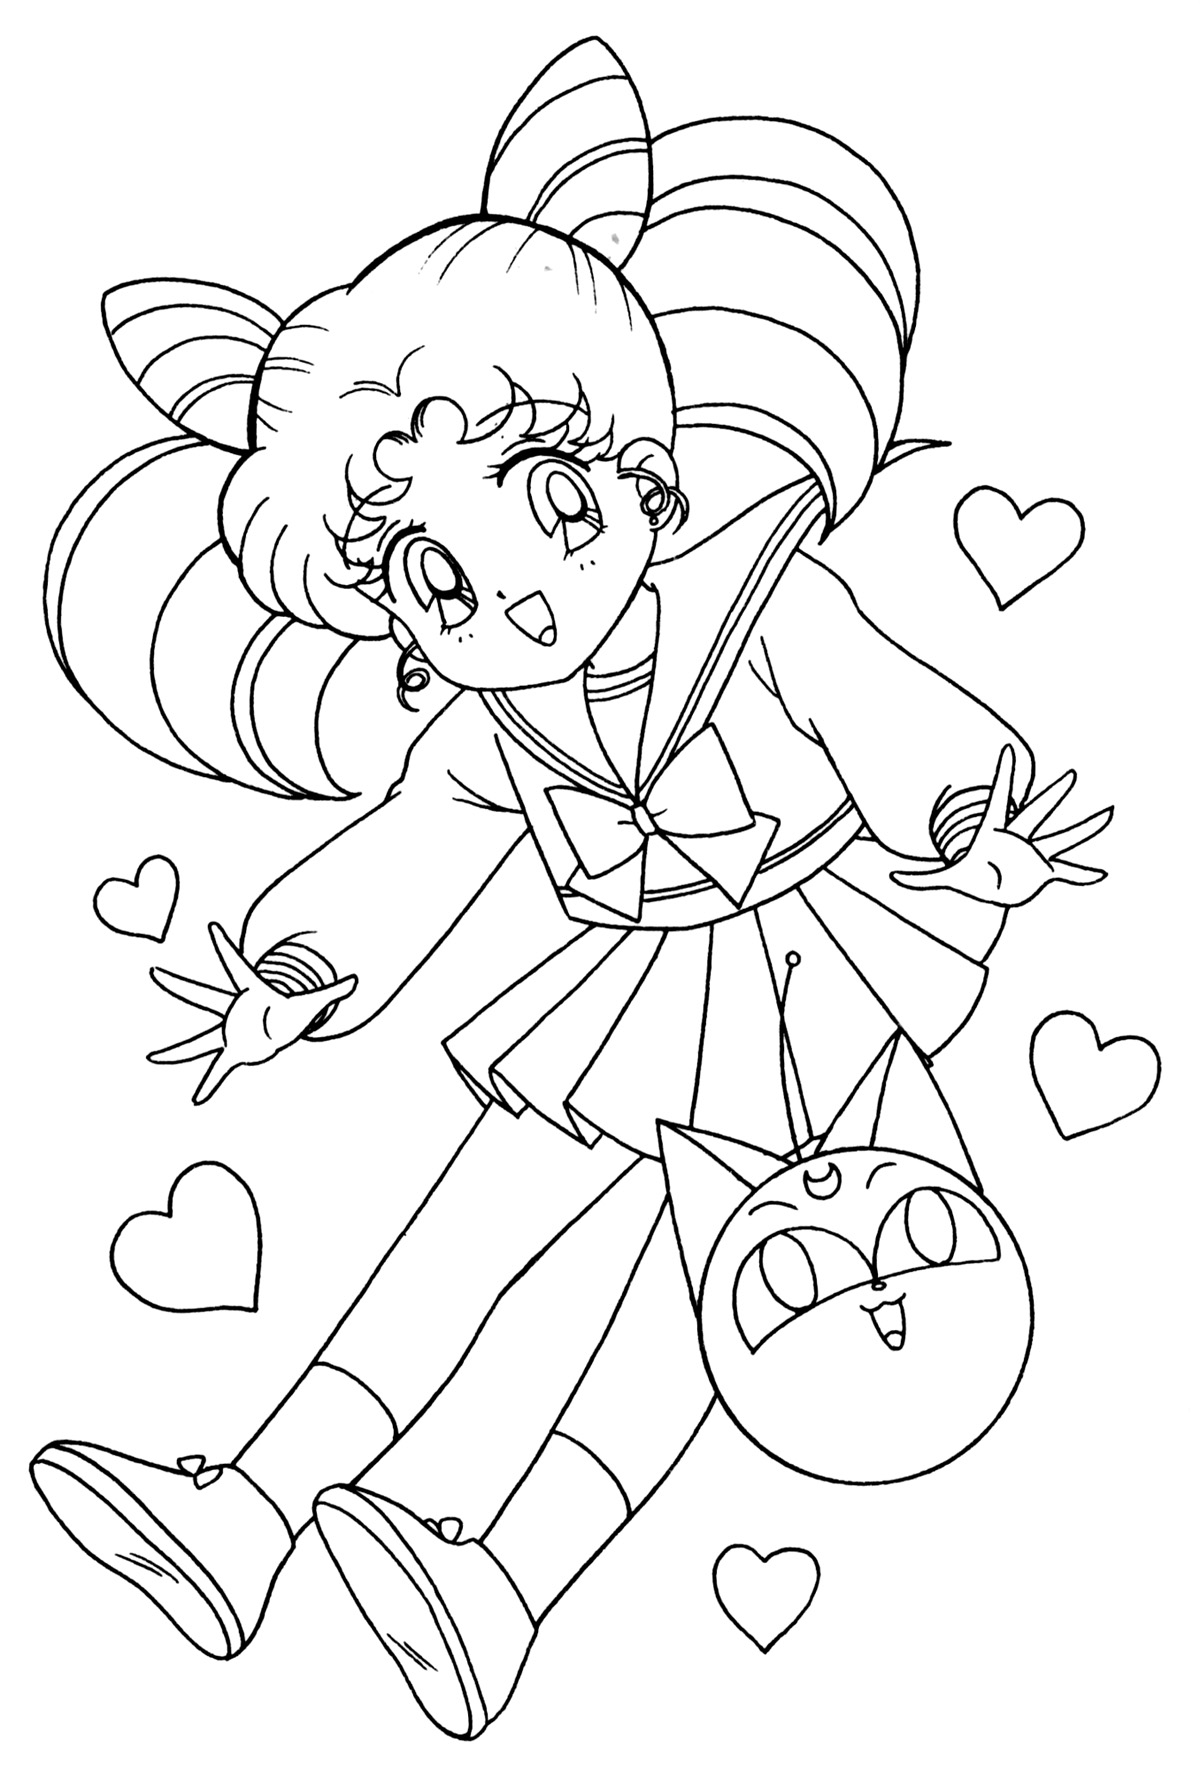 chibi moon coloring pages - photo#22